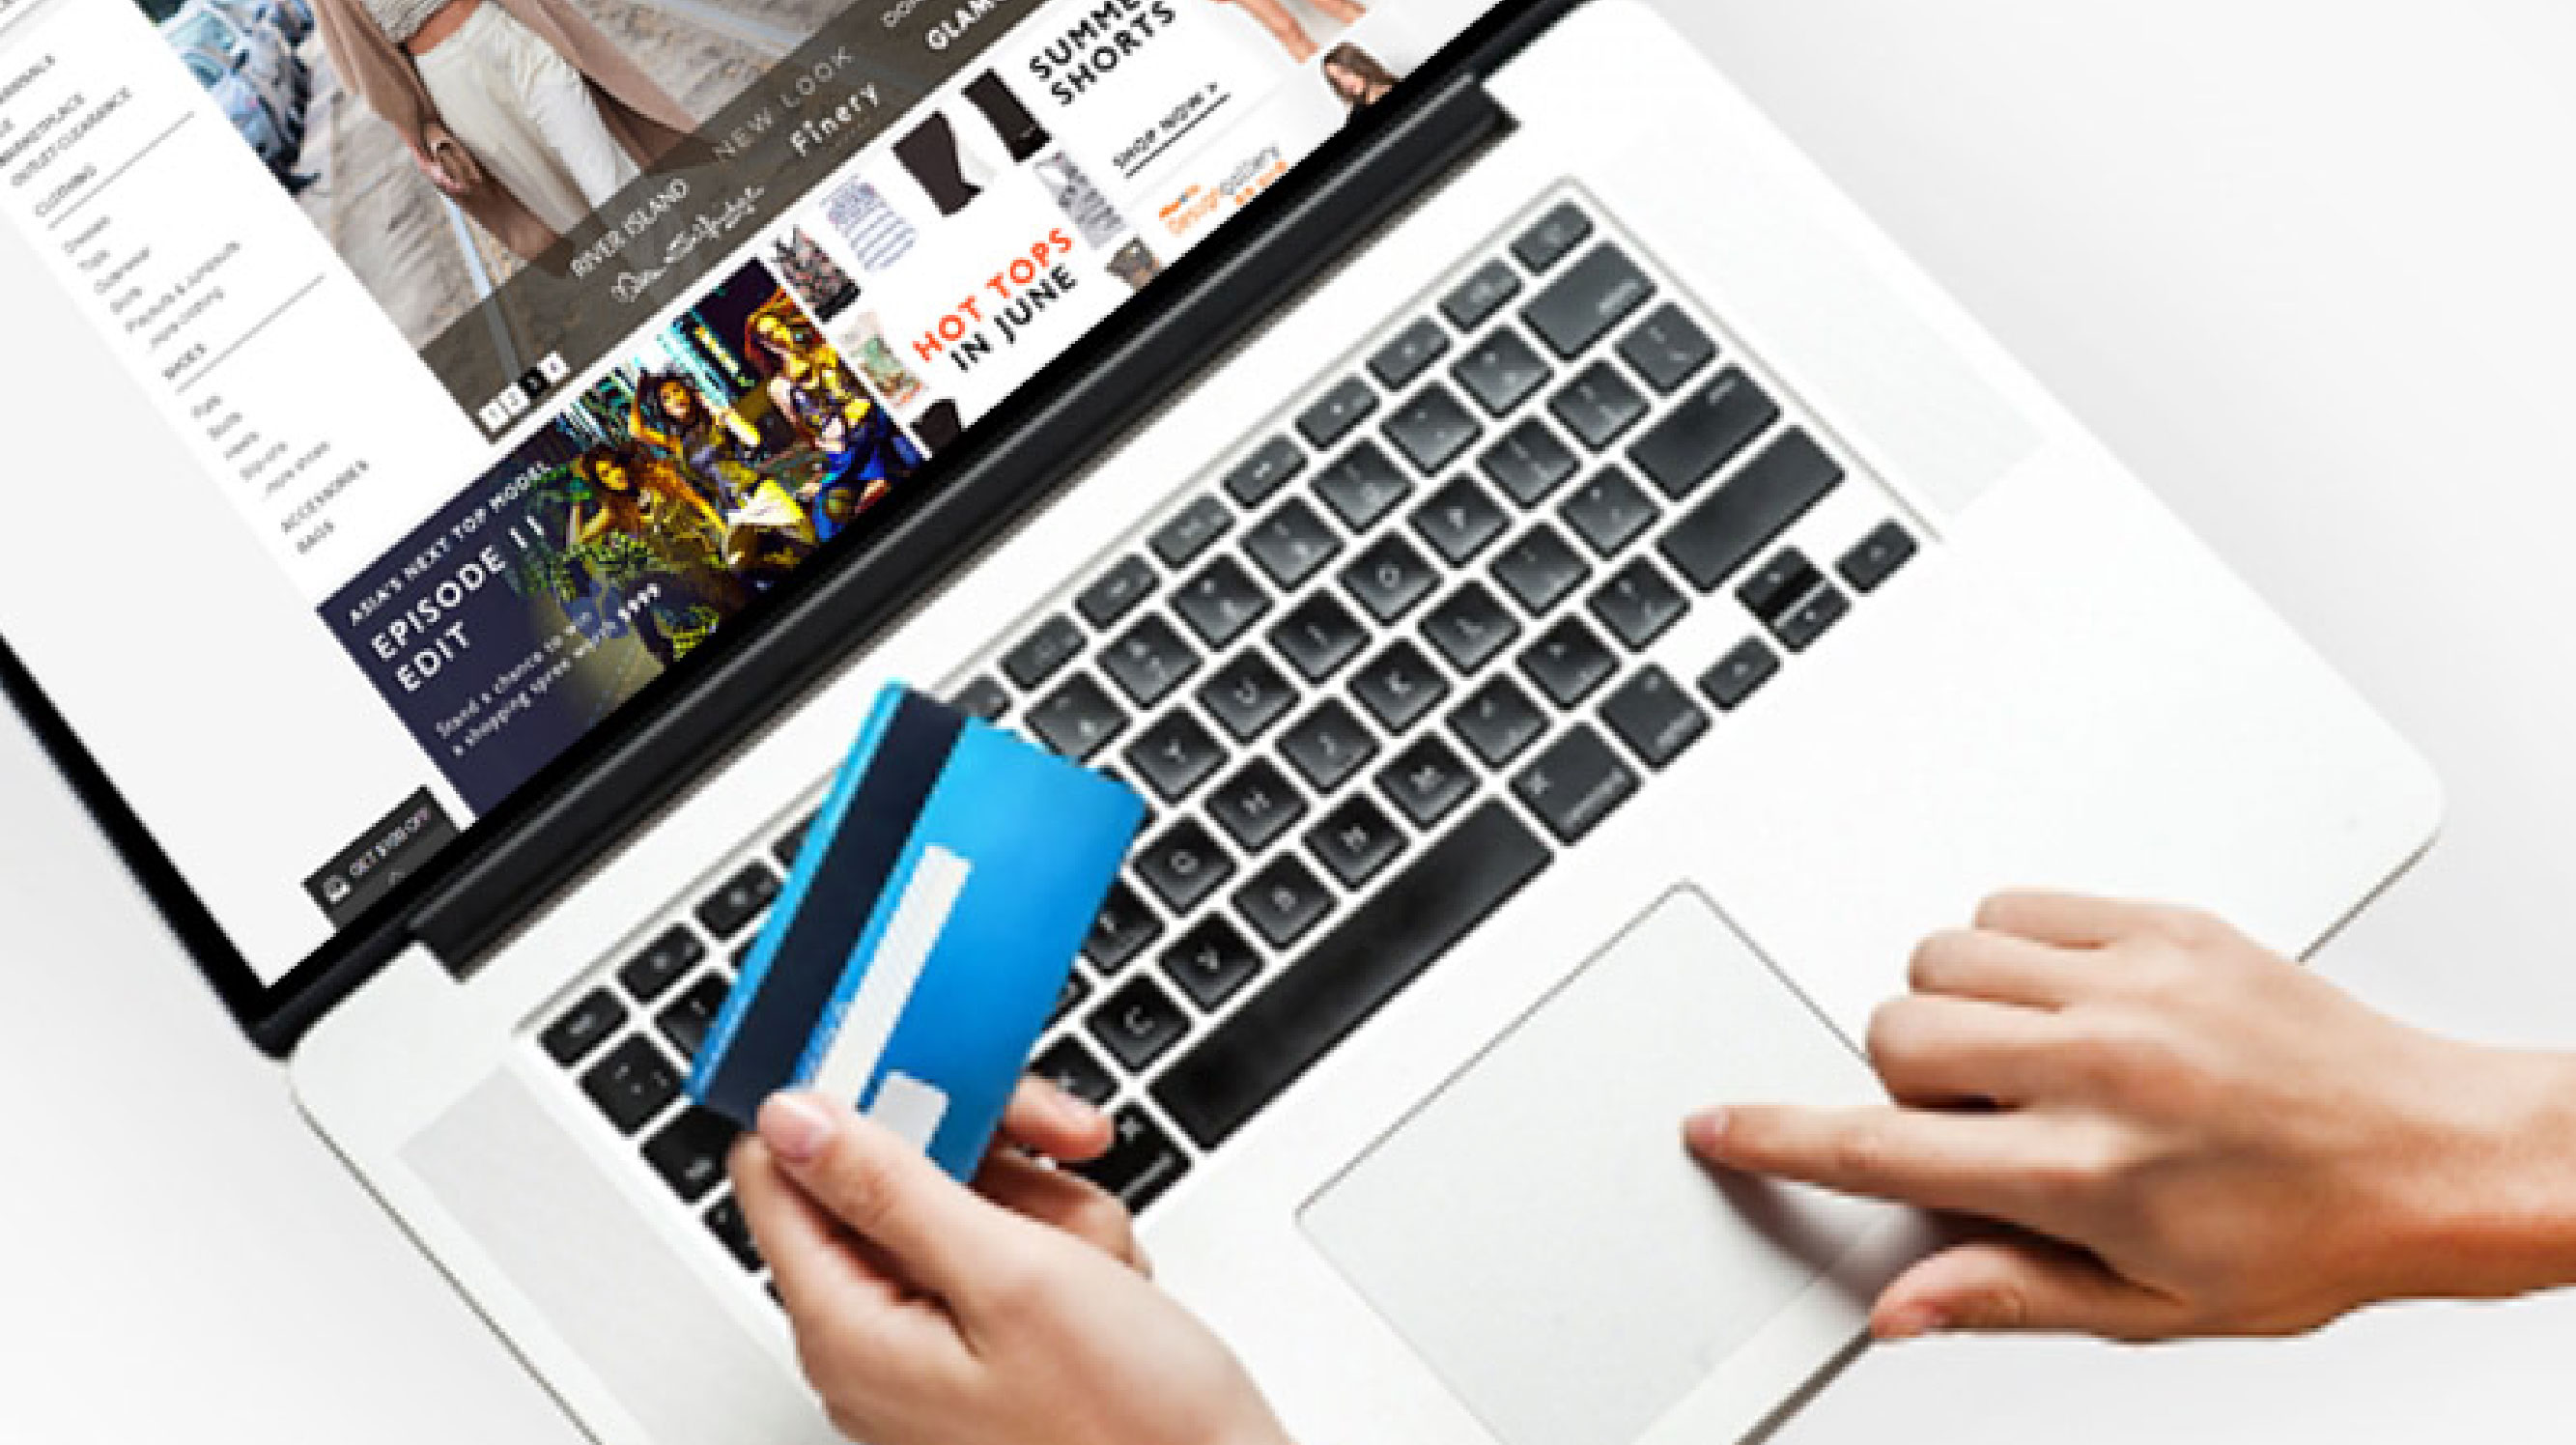 How to shop safely when buying online